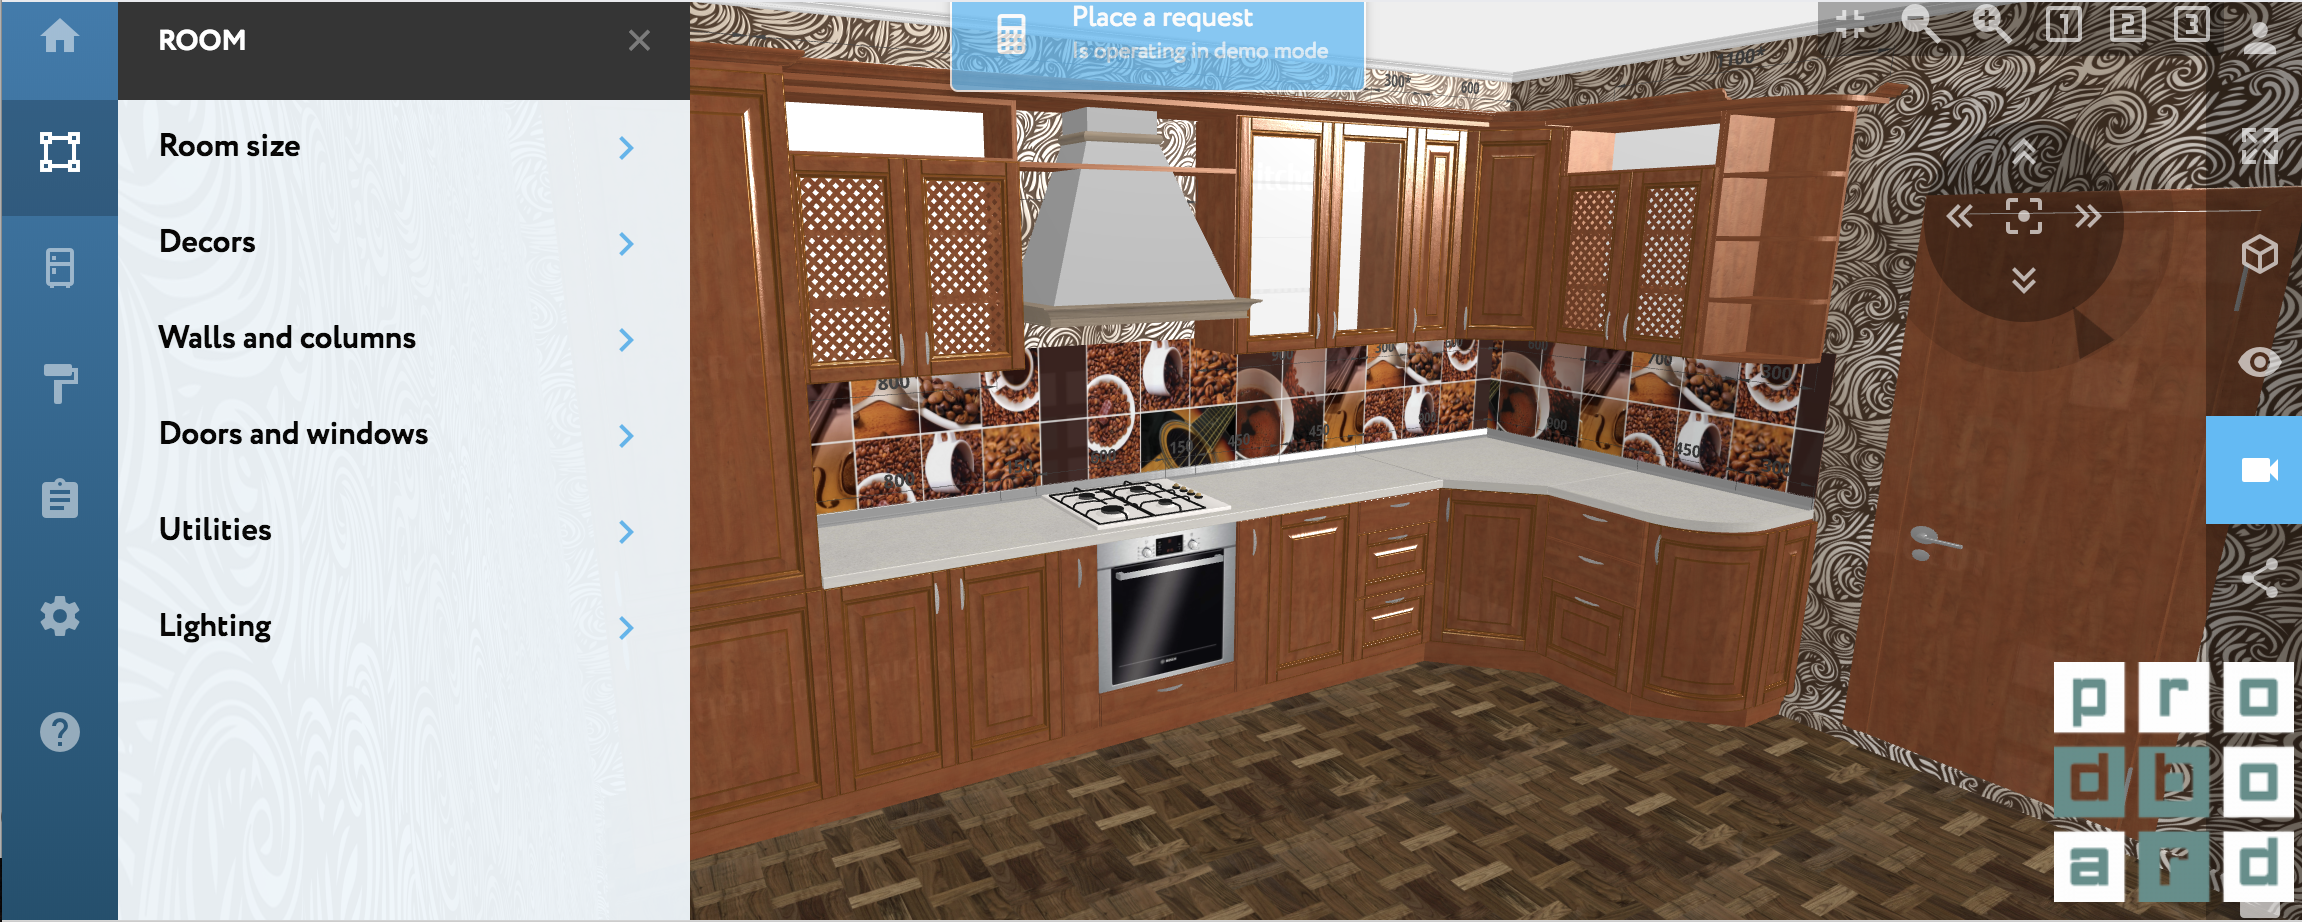 24 Best Online Kitchen Design Software Options In 2021 Free Paid Interior Design Programs Kitchen Design Software Free Online Kitchen Design